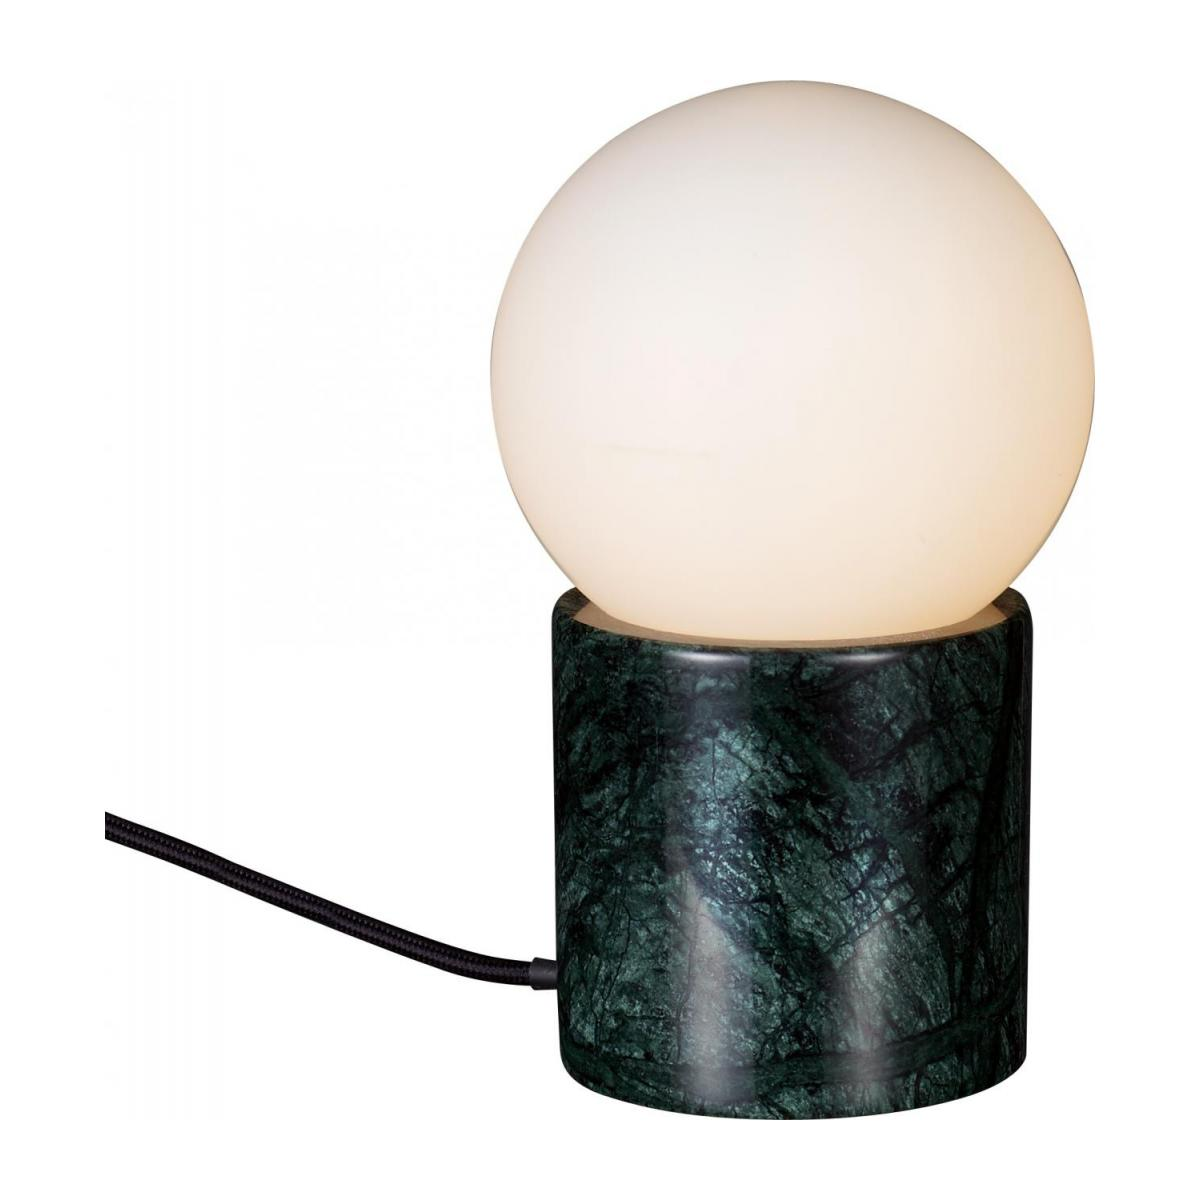 Lampe de table en marbre verre/Marble Table Lamp Green